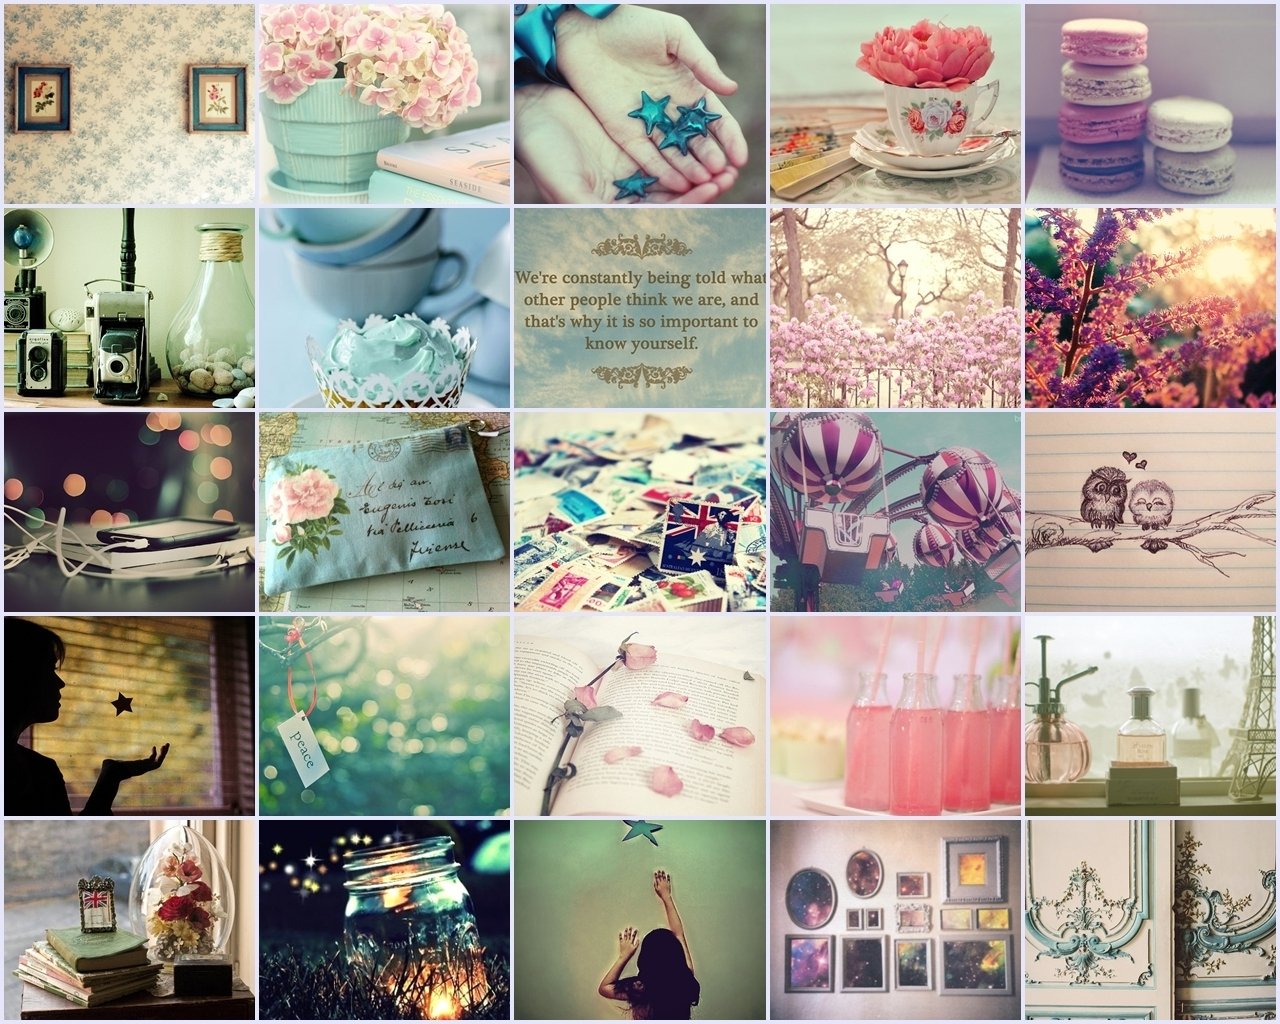 girly collage wallpaper - photo #2